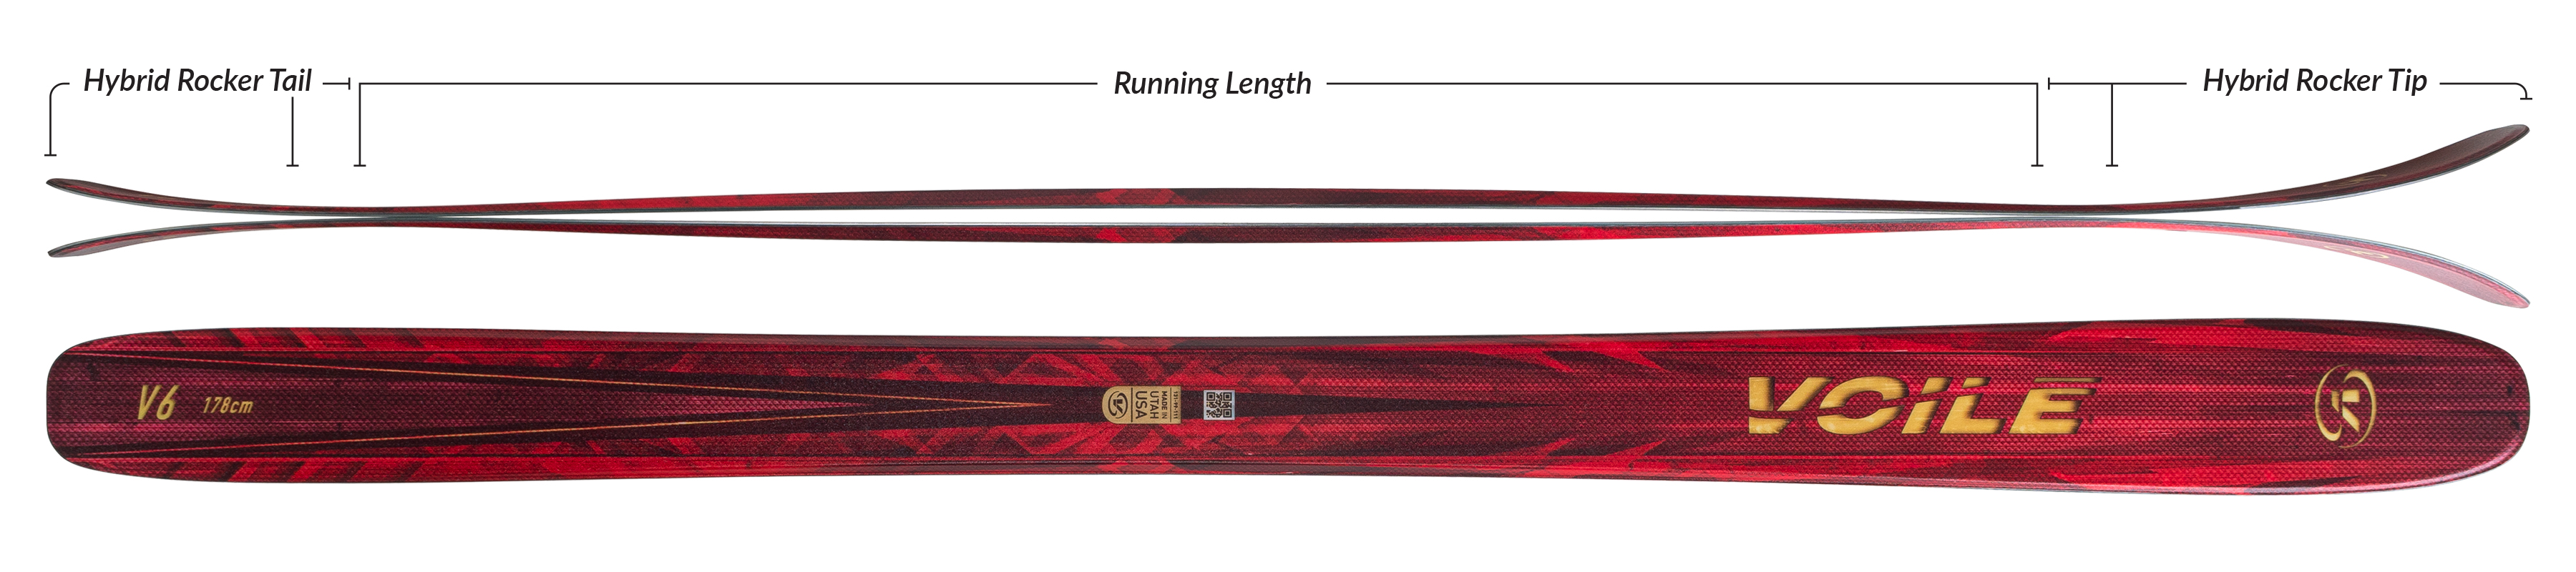 Voile V6 Skis Camber Profile